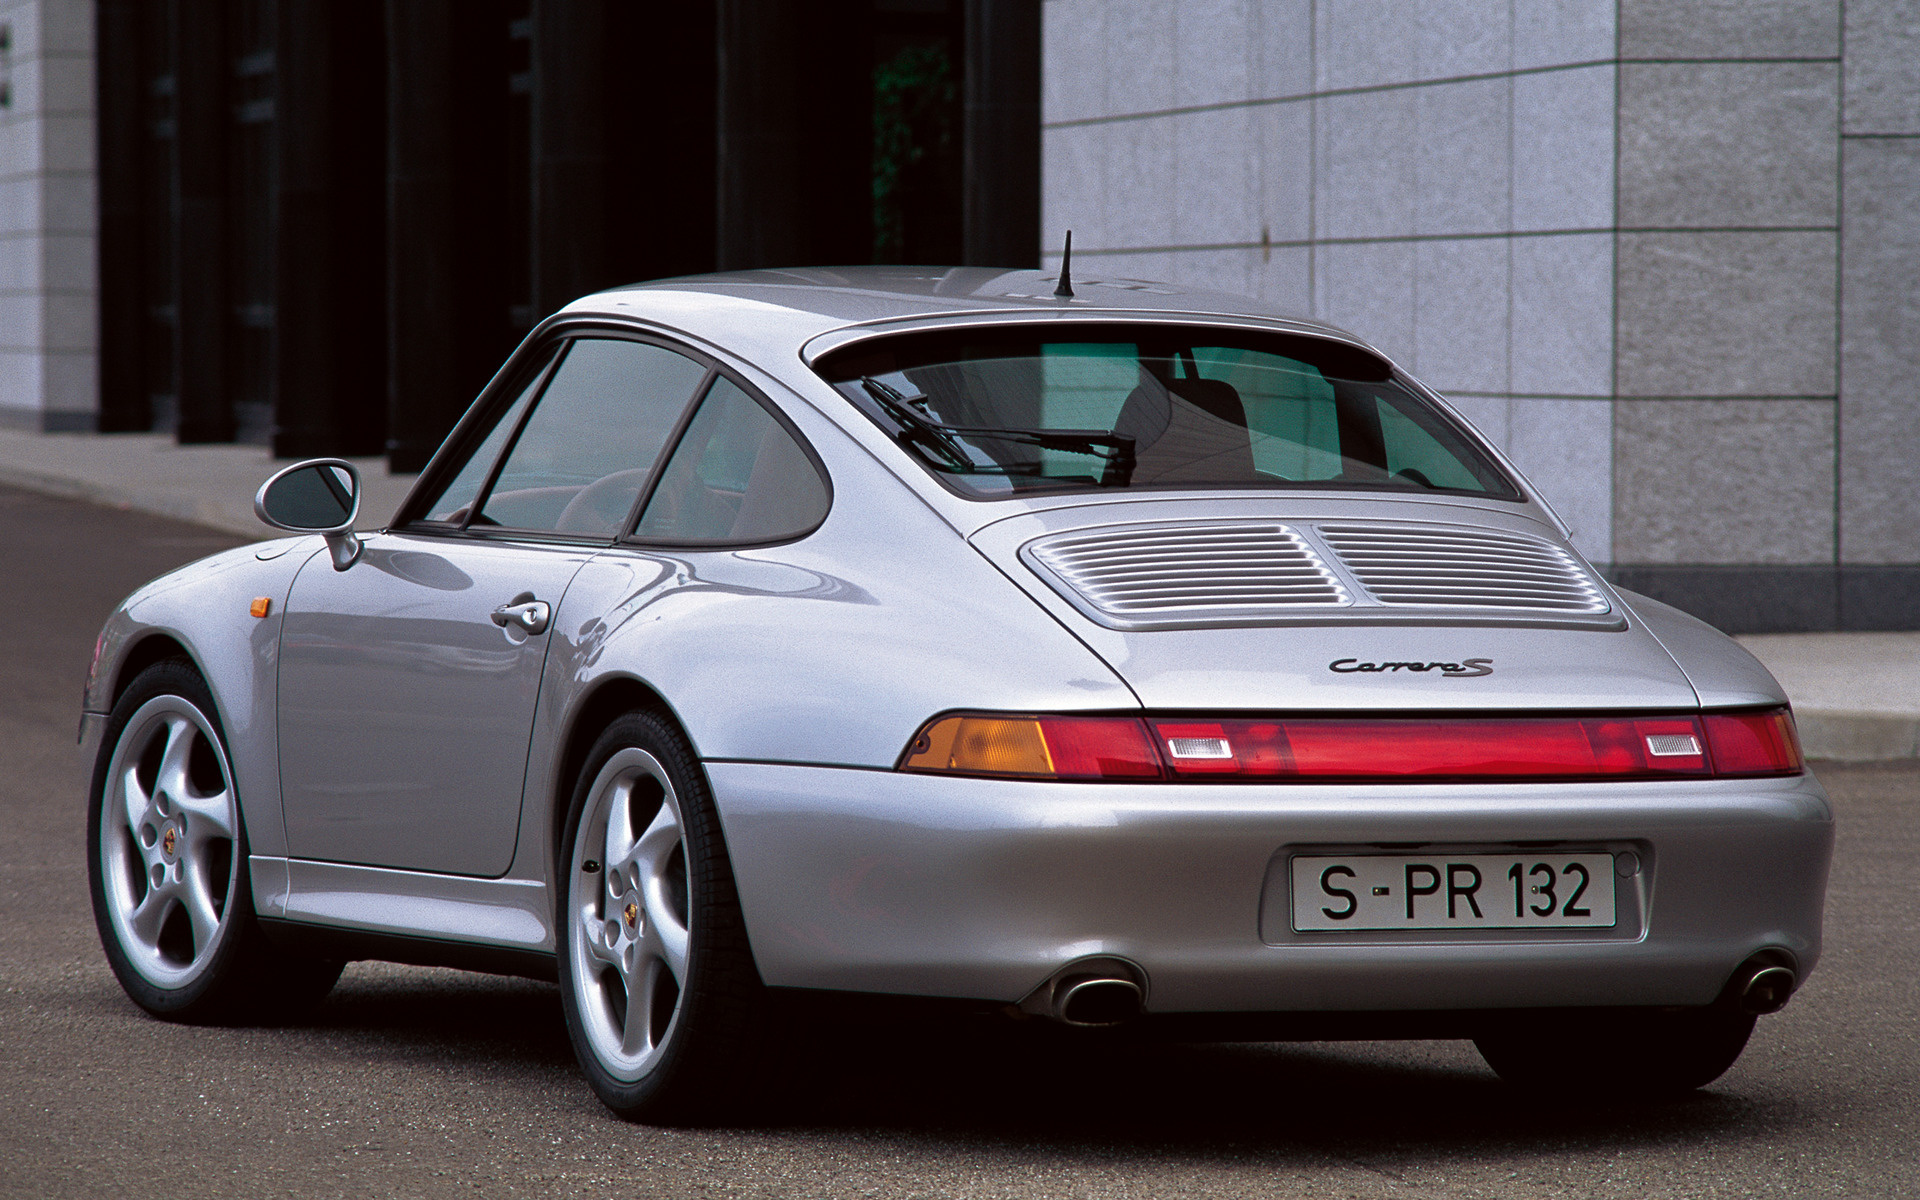 1995 porsche 911 carrera s wallpapers and hd images - Porsche 911 carrera s wallpaper ...